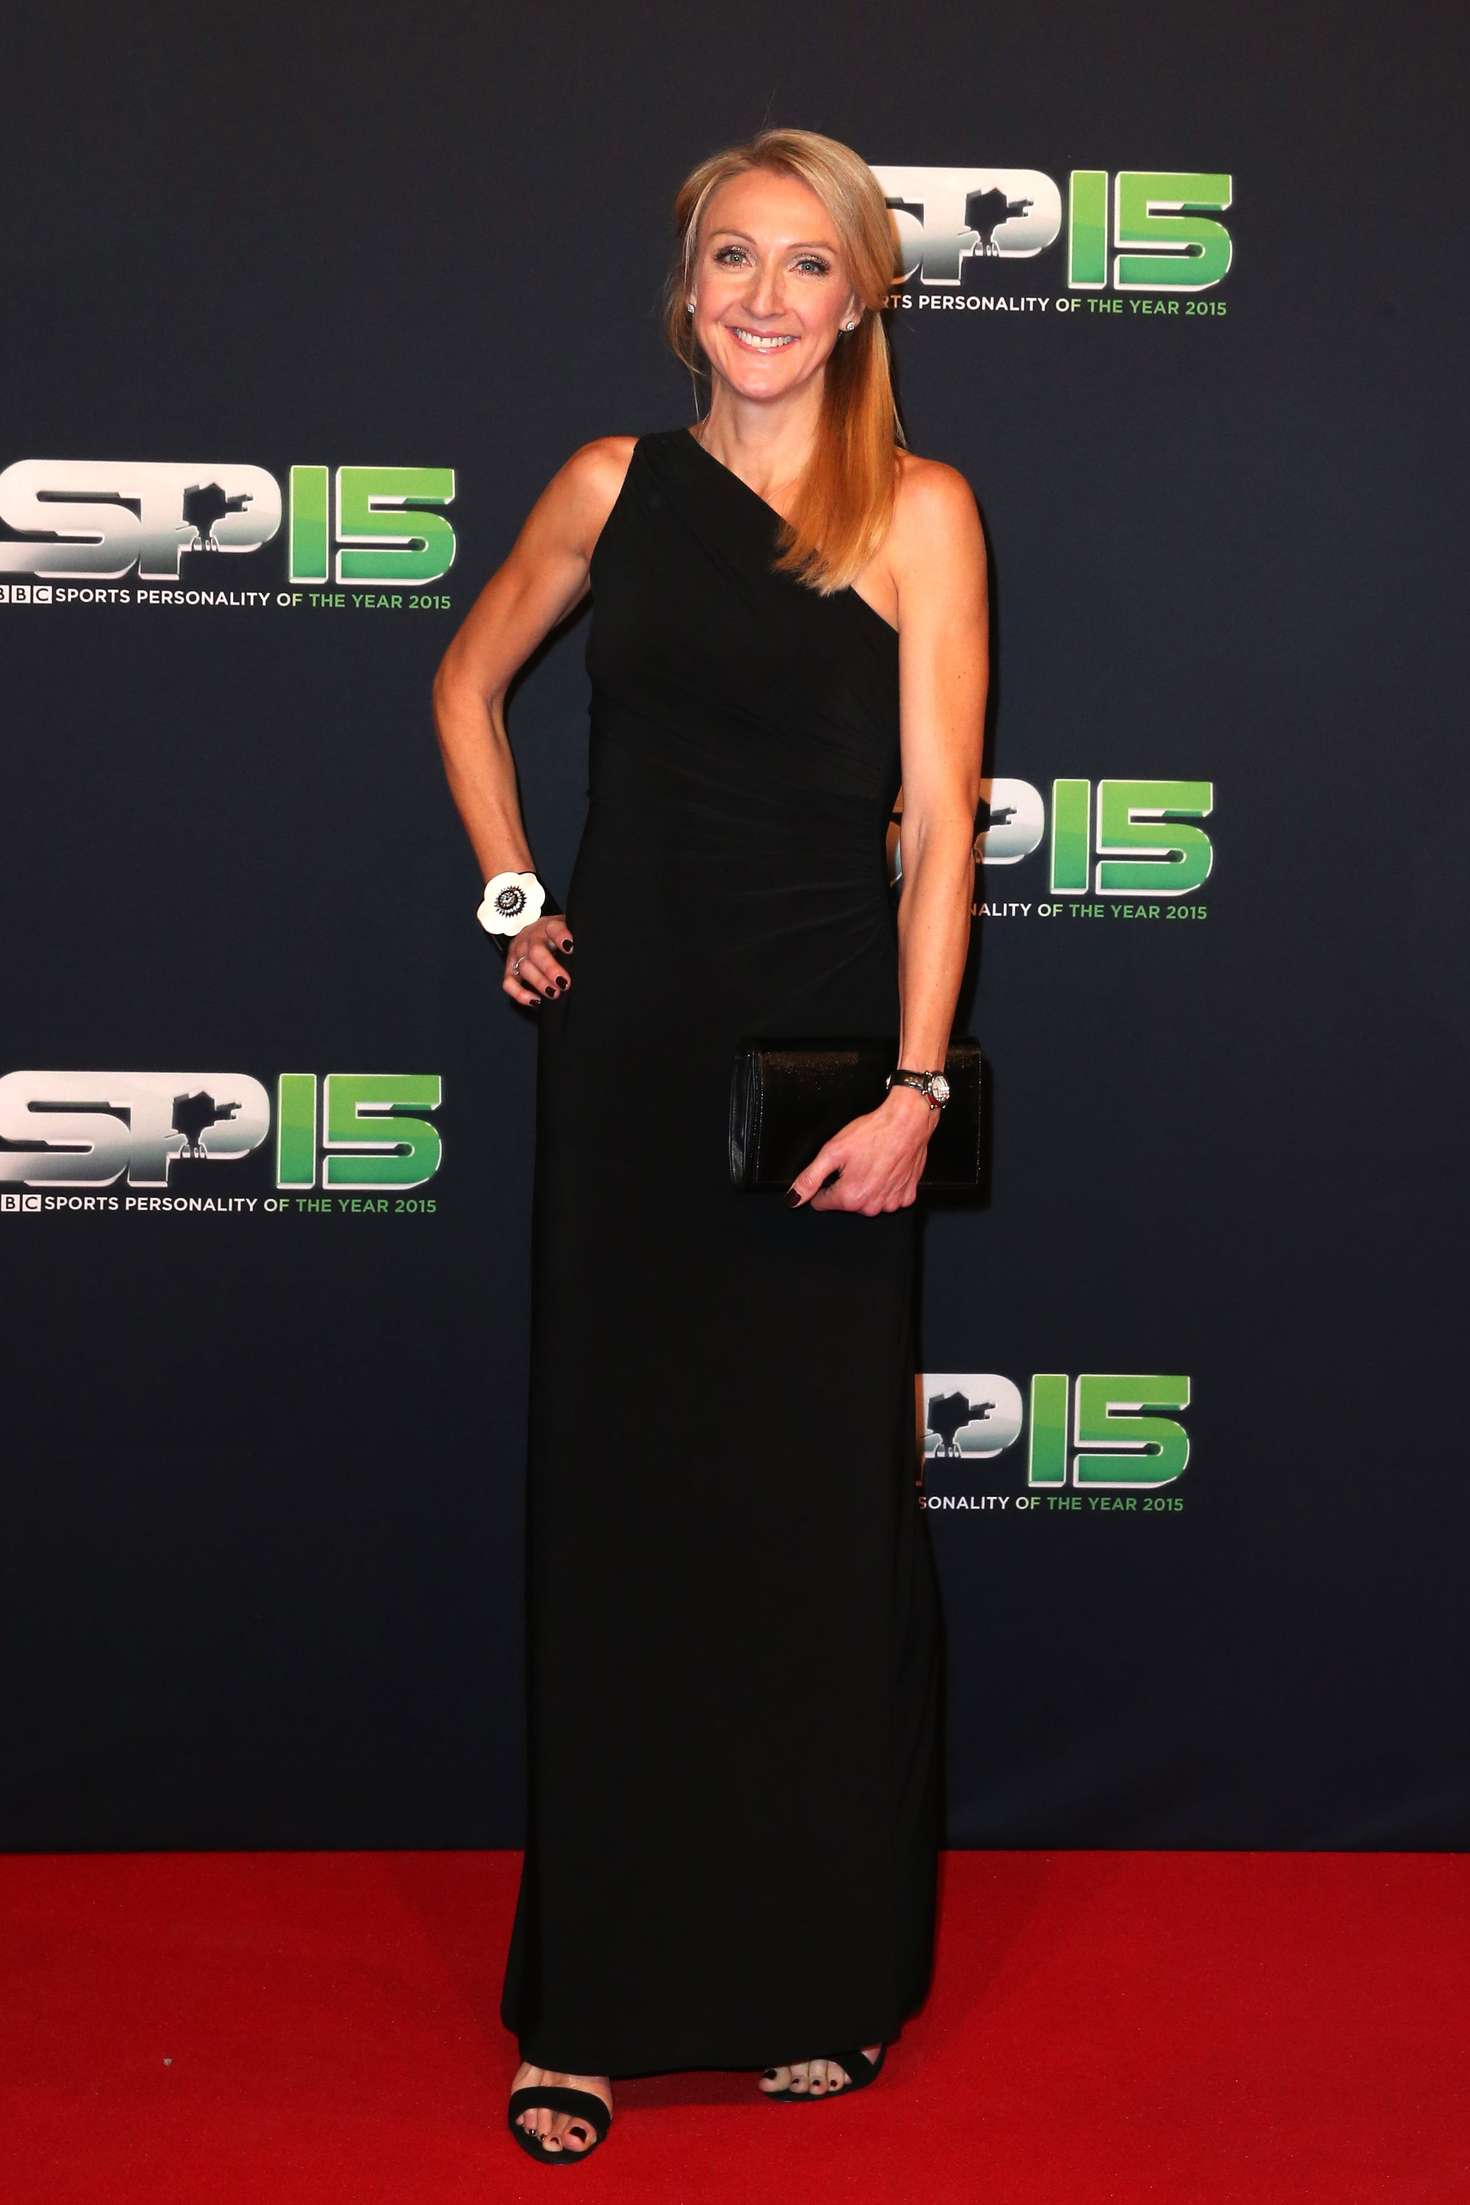 Paula Radcliffe BBC Sports Personality Of The Year Award in Belfast